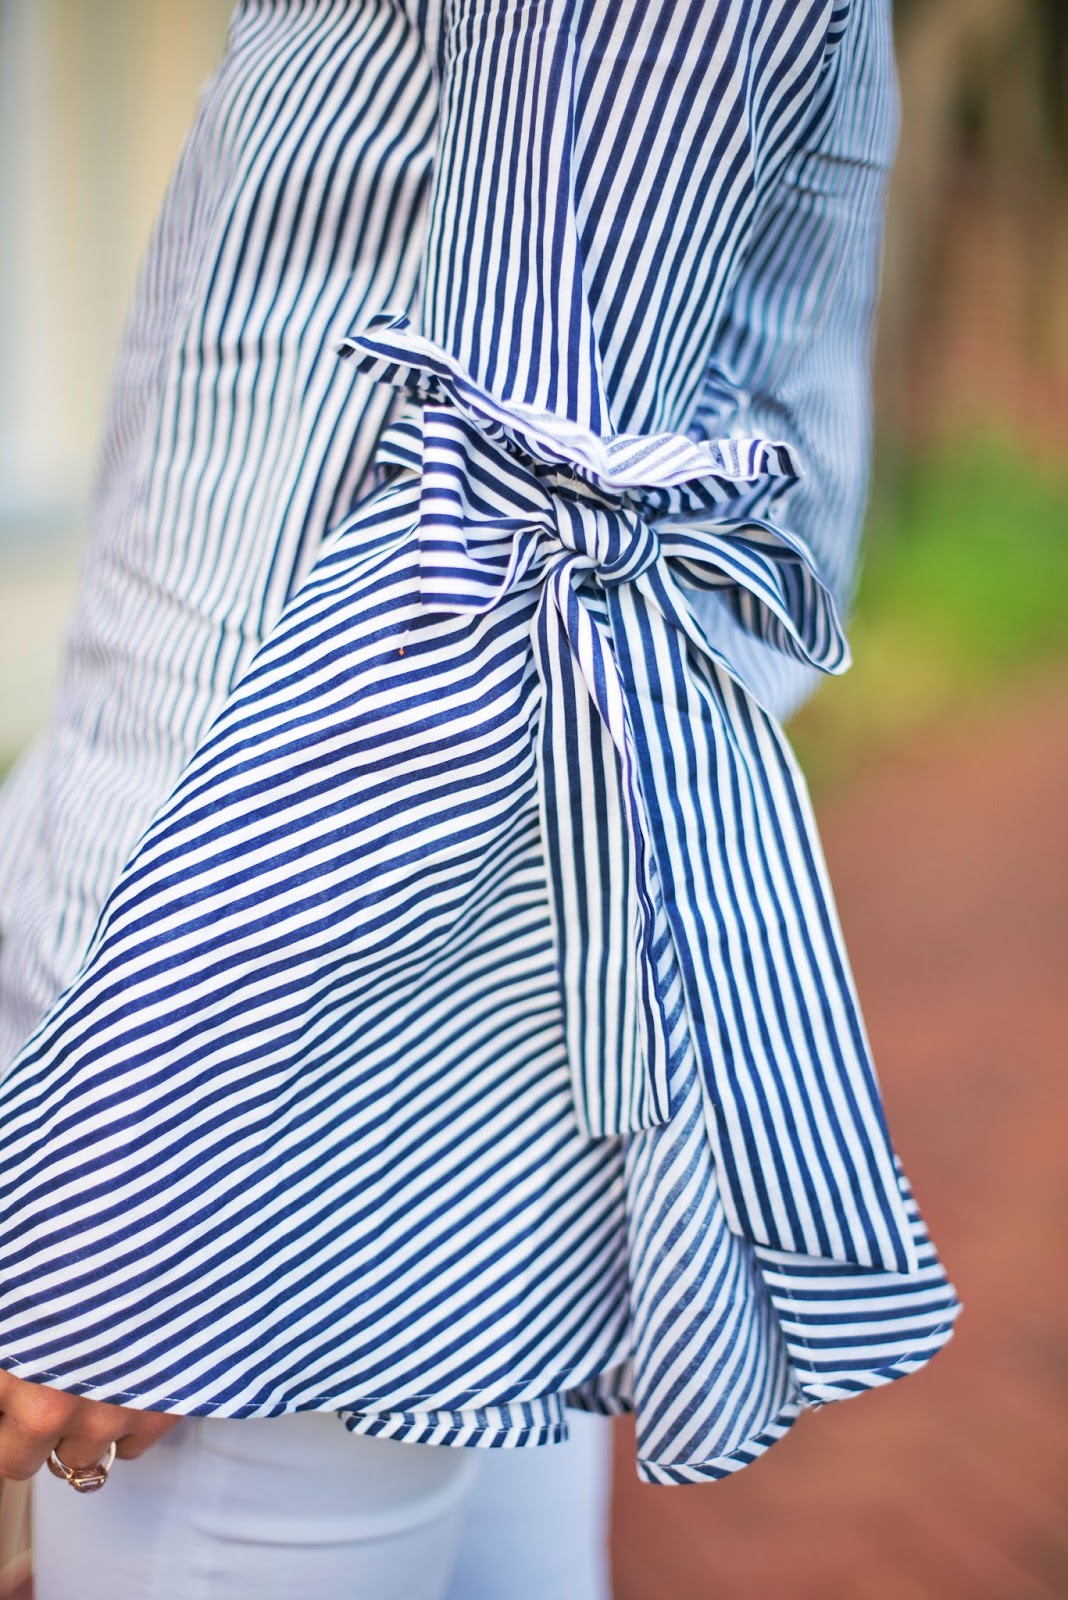 Bell sleeves and bows - See more on Something Delightful Blog